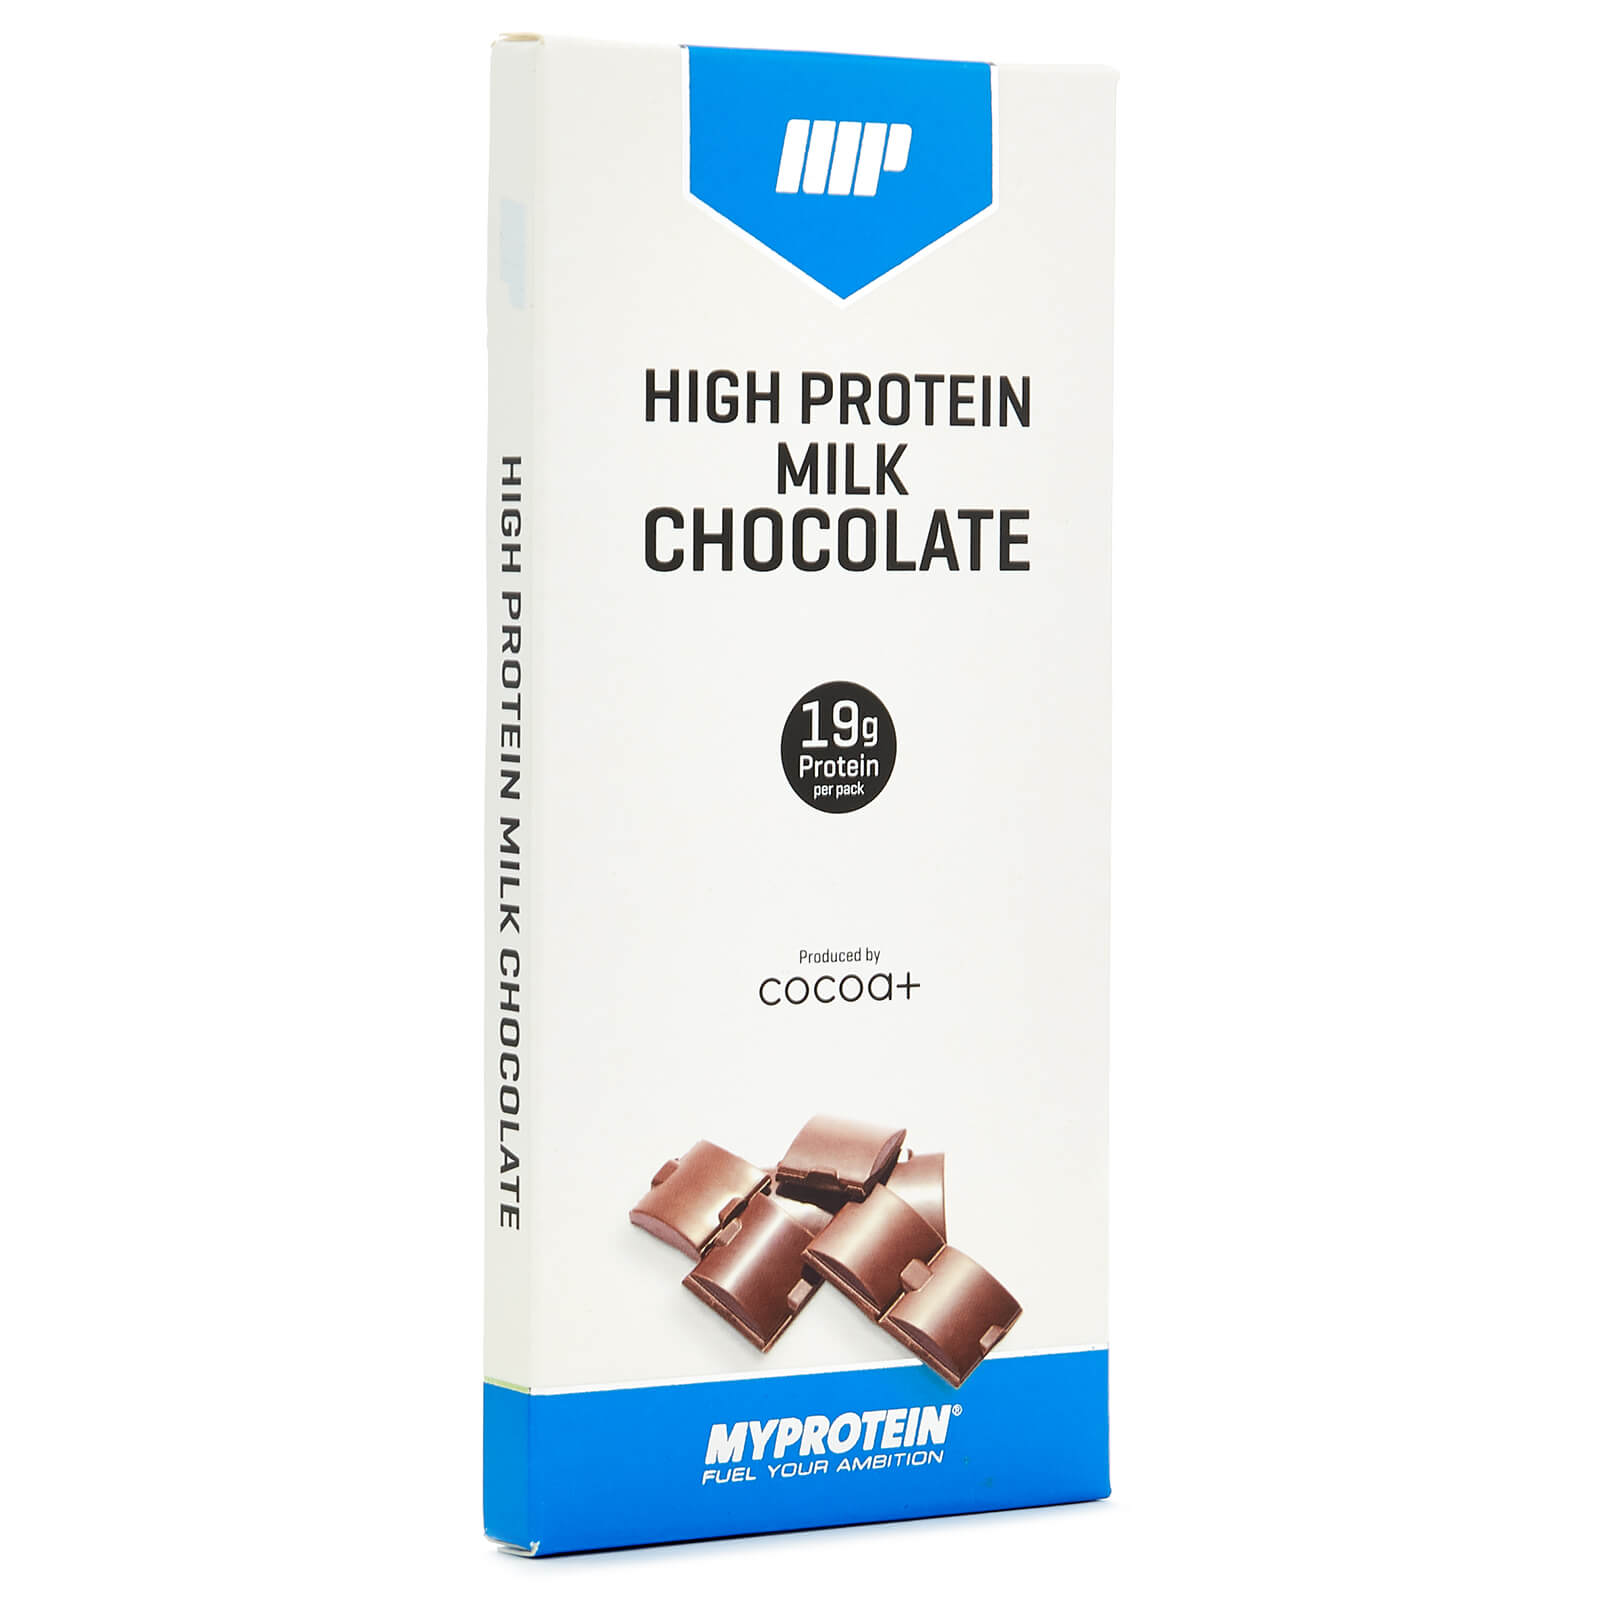 High Protein Chocolate, Milk Chocolate - 70g